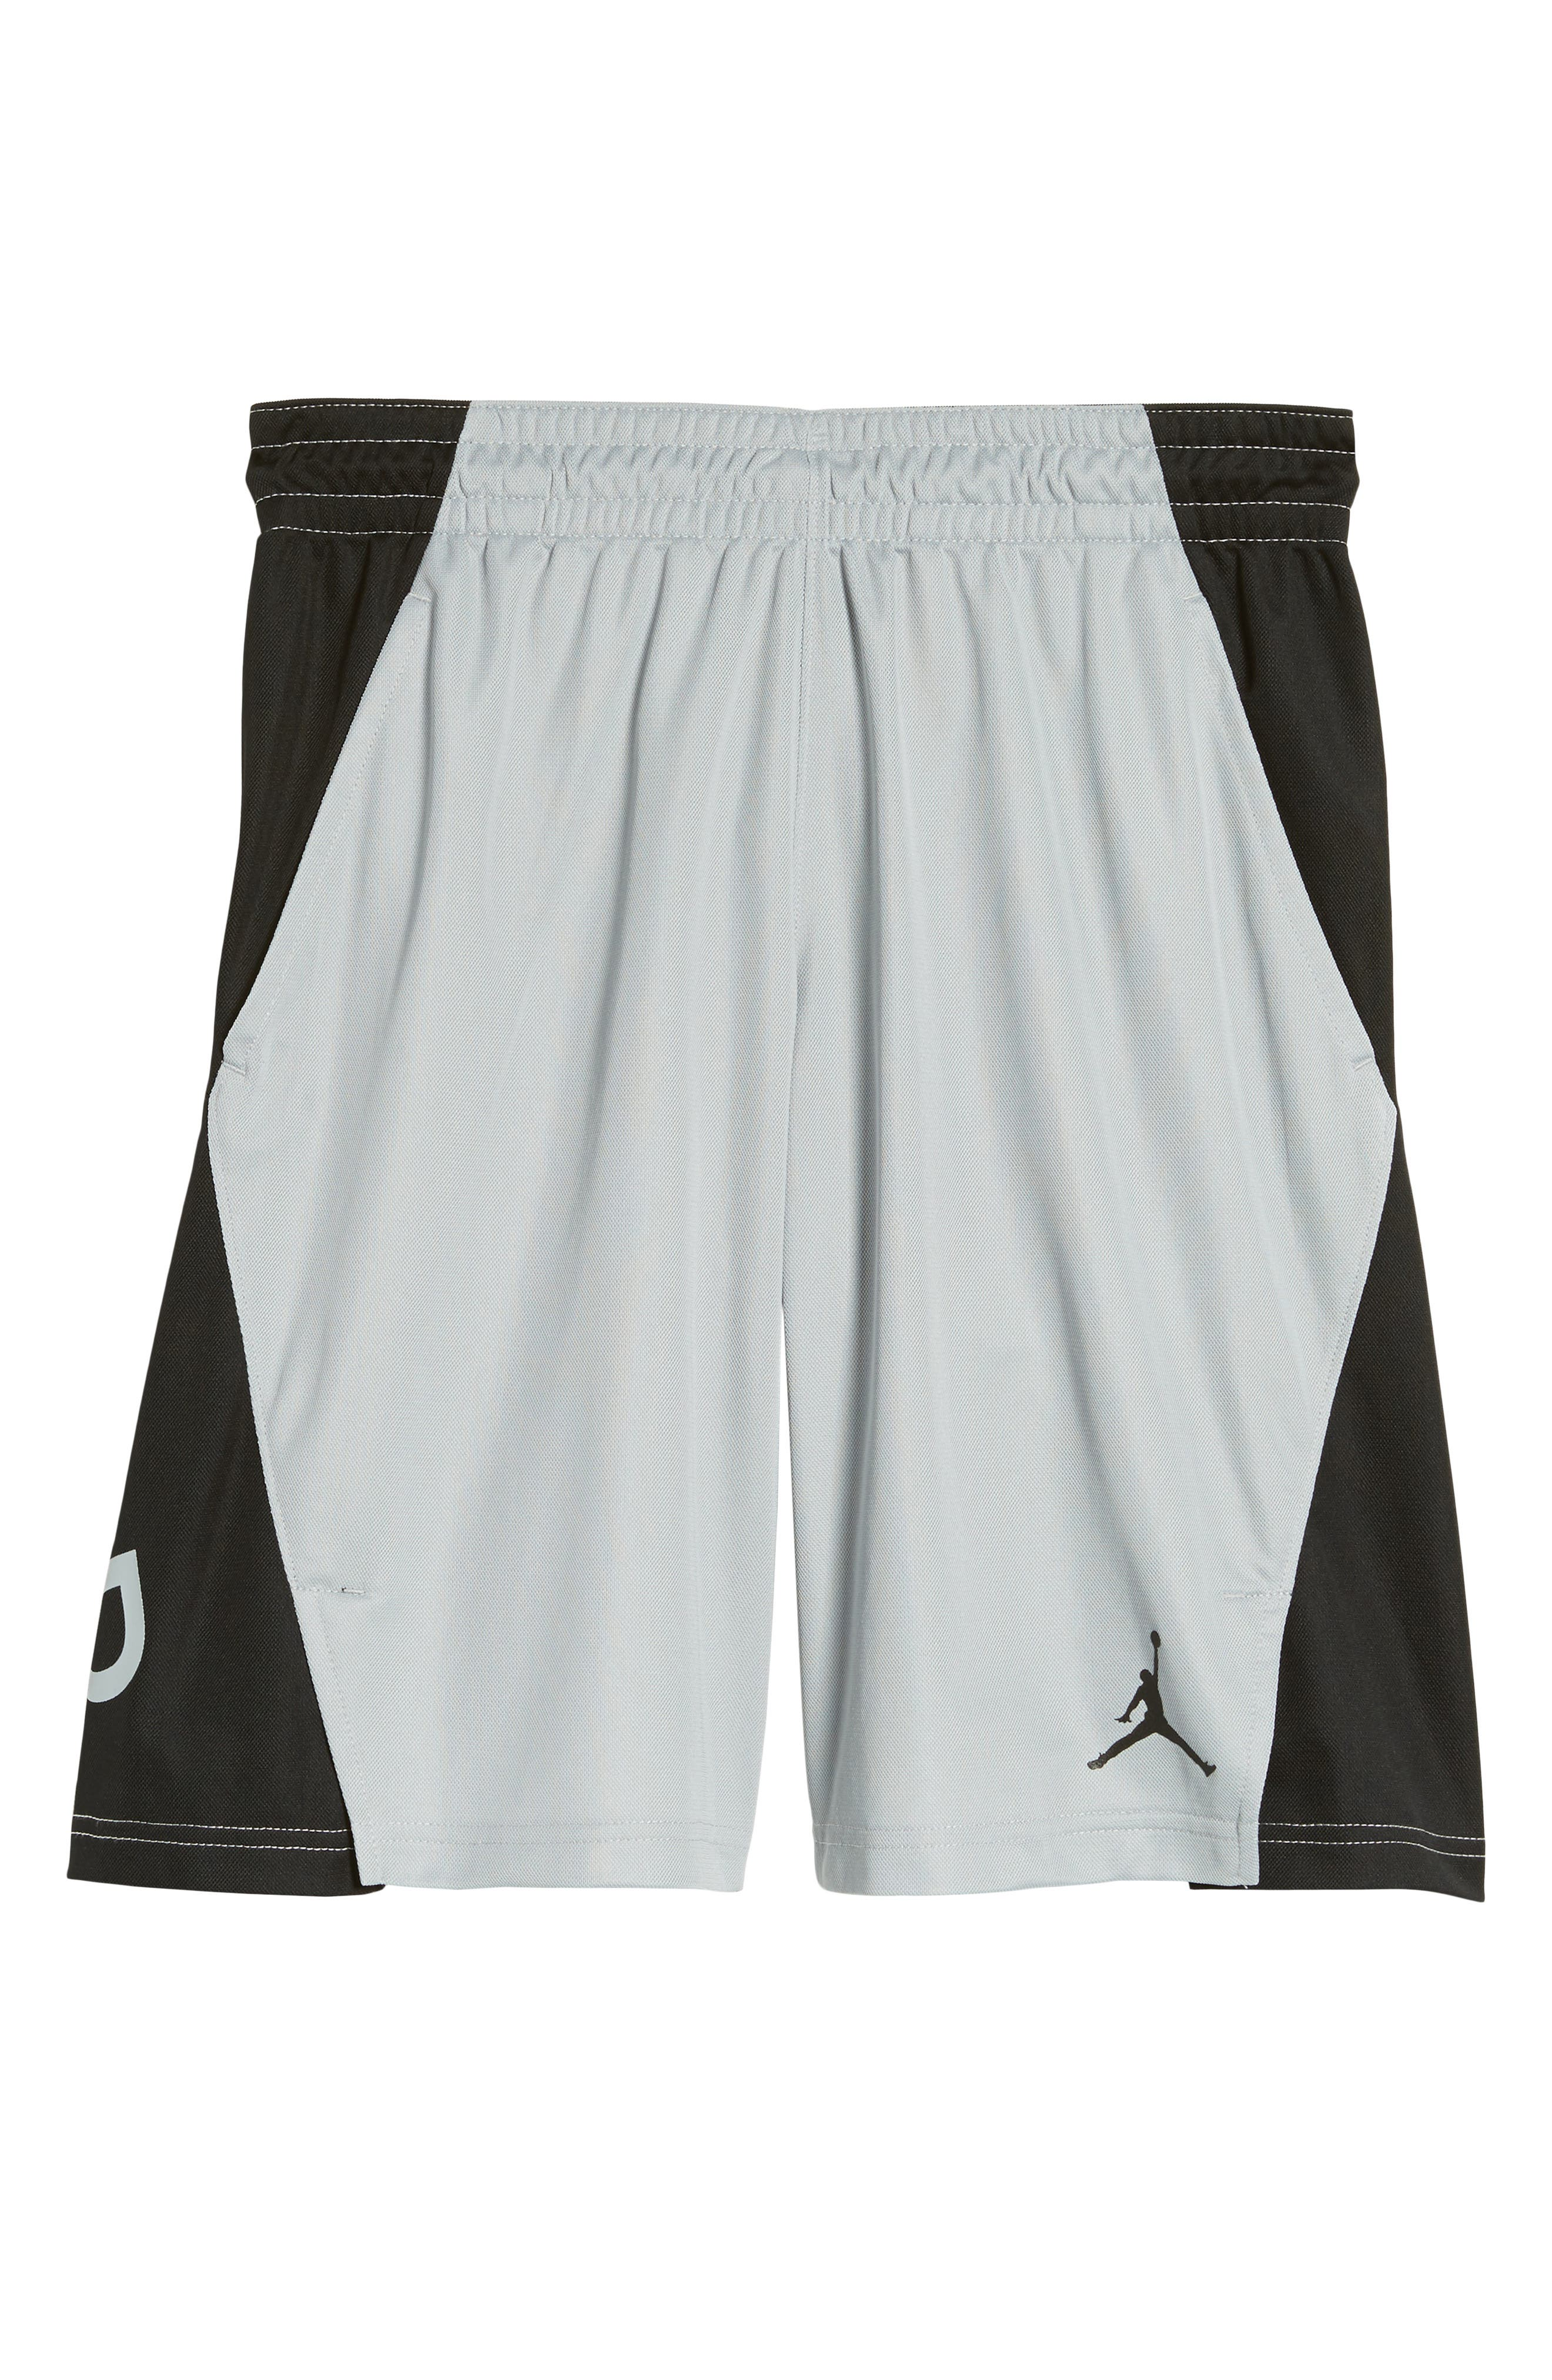 Flight Basketball Shorts,                         Main,                         color, Wolf Grey/ Black/ Black